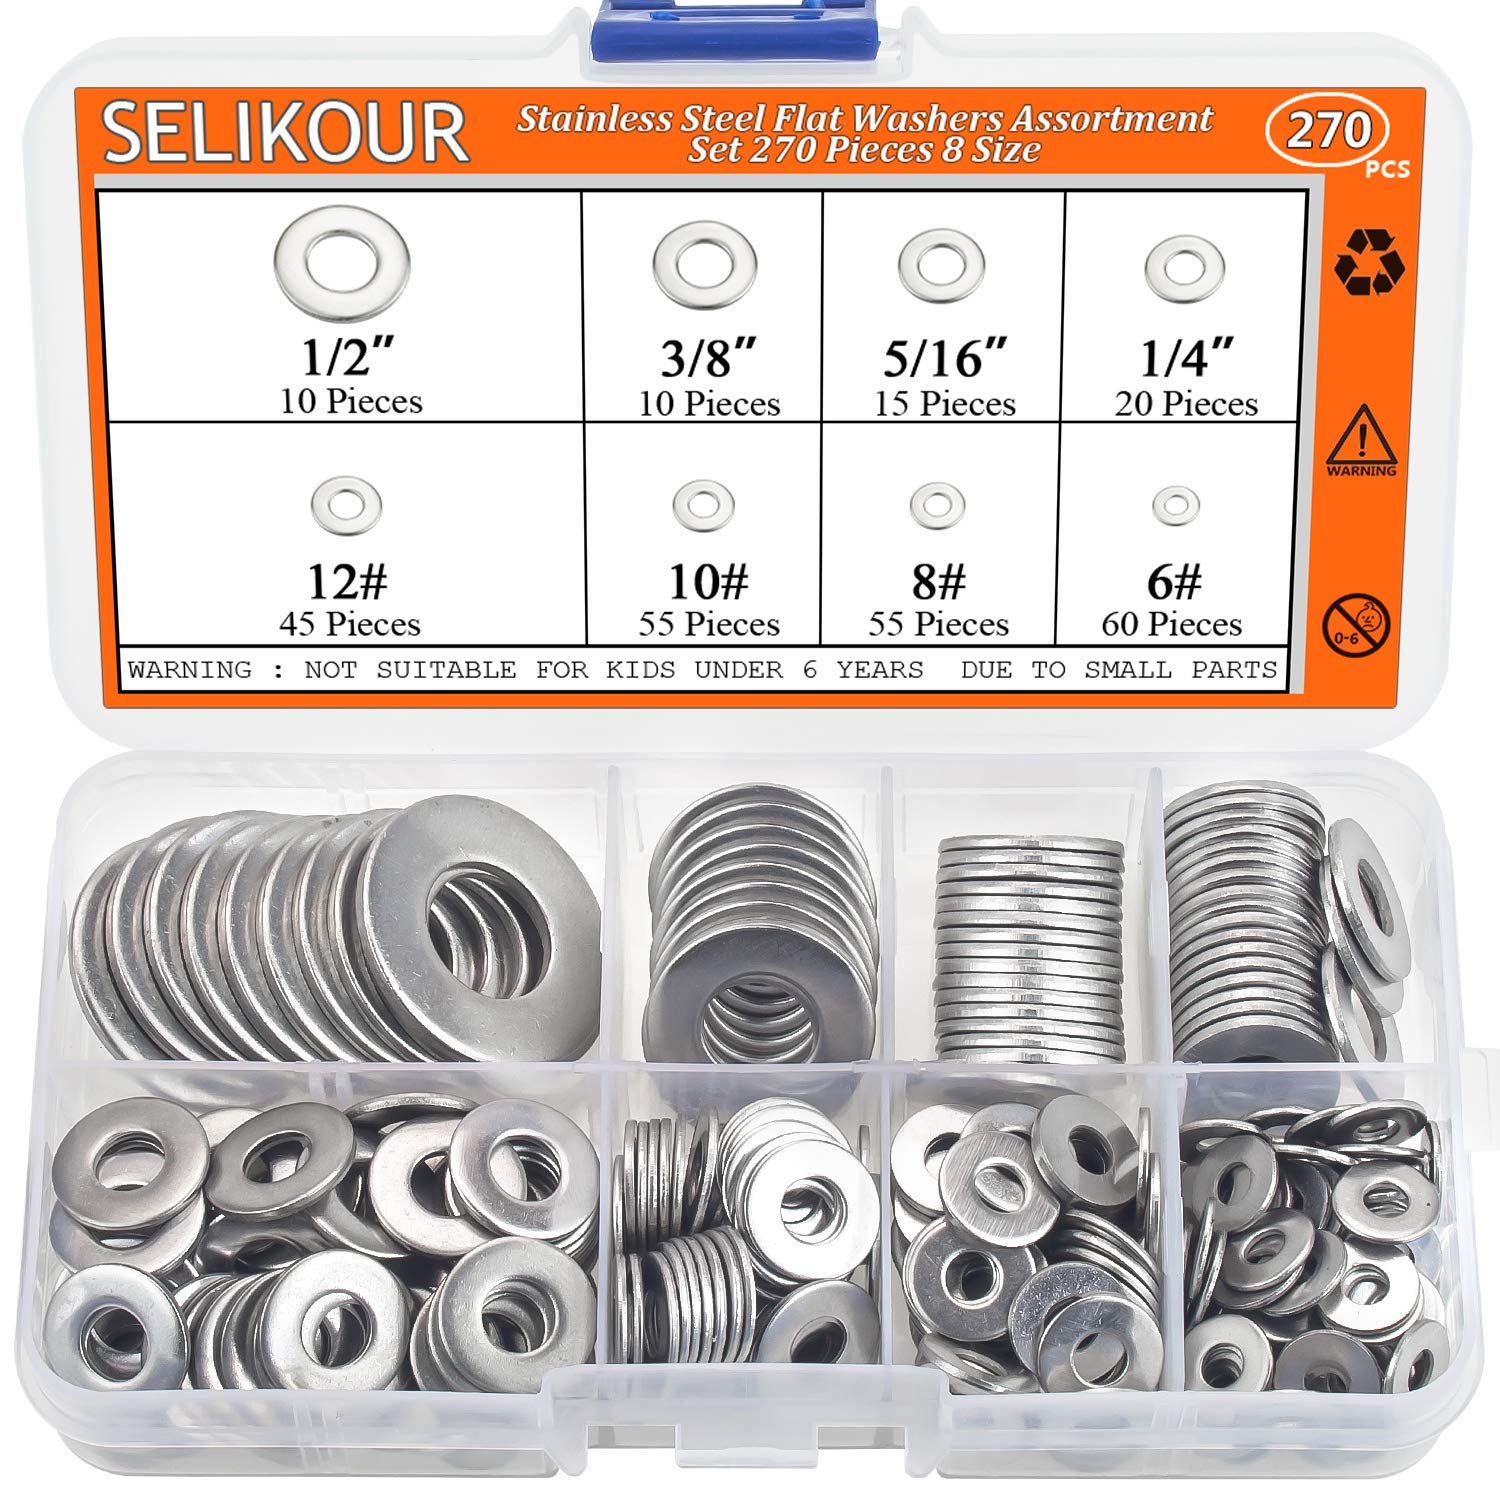 SELIKOUR 270Pcs 8 Sizes Stainless Steel Flat Washers Assortment Kit, 1/2 3/8 5/16 1/4 12# 10# 8# 6# by SELIKOUR